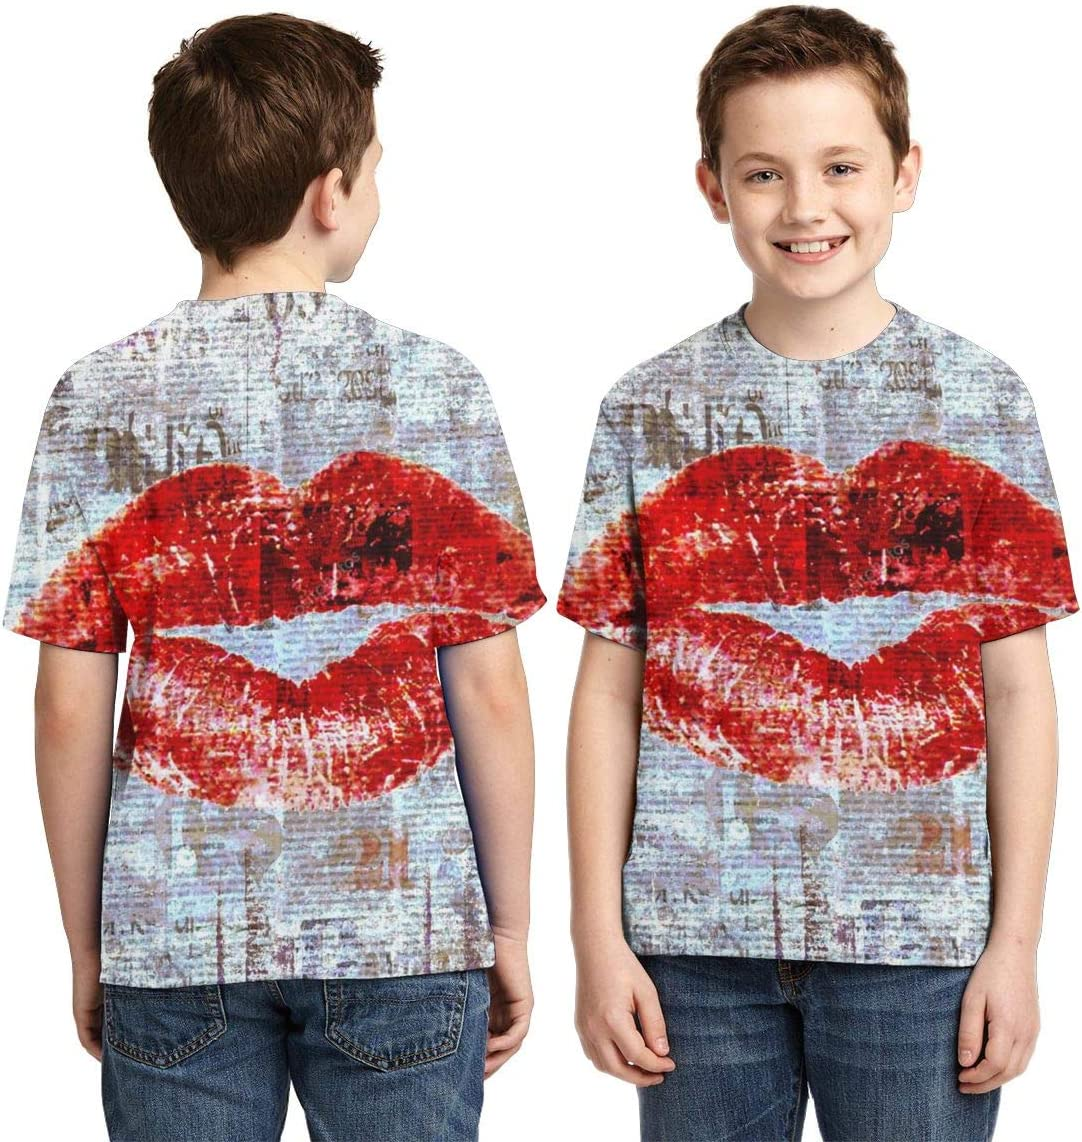 Quguangyan 3D Red Lipstick in Old Paper Boys T-Shirt Short Sleeve Child Tee